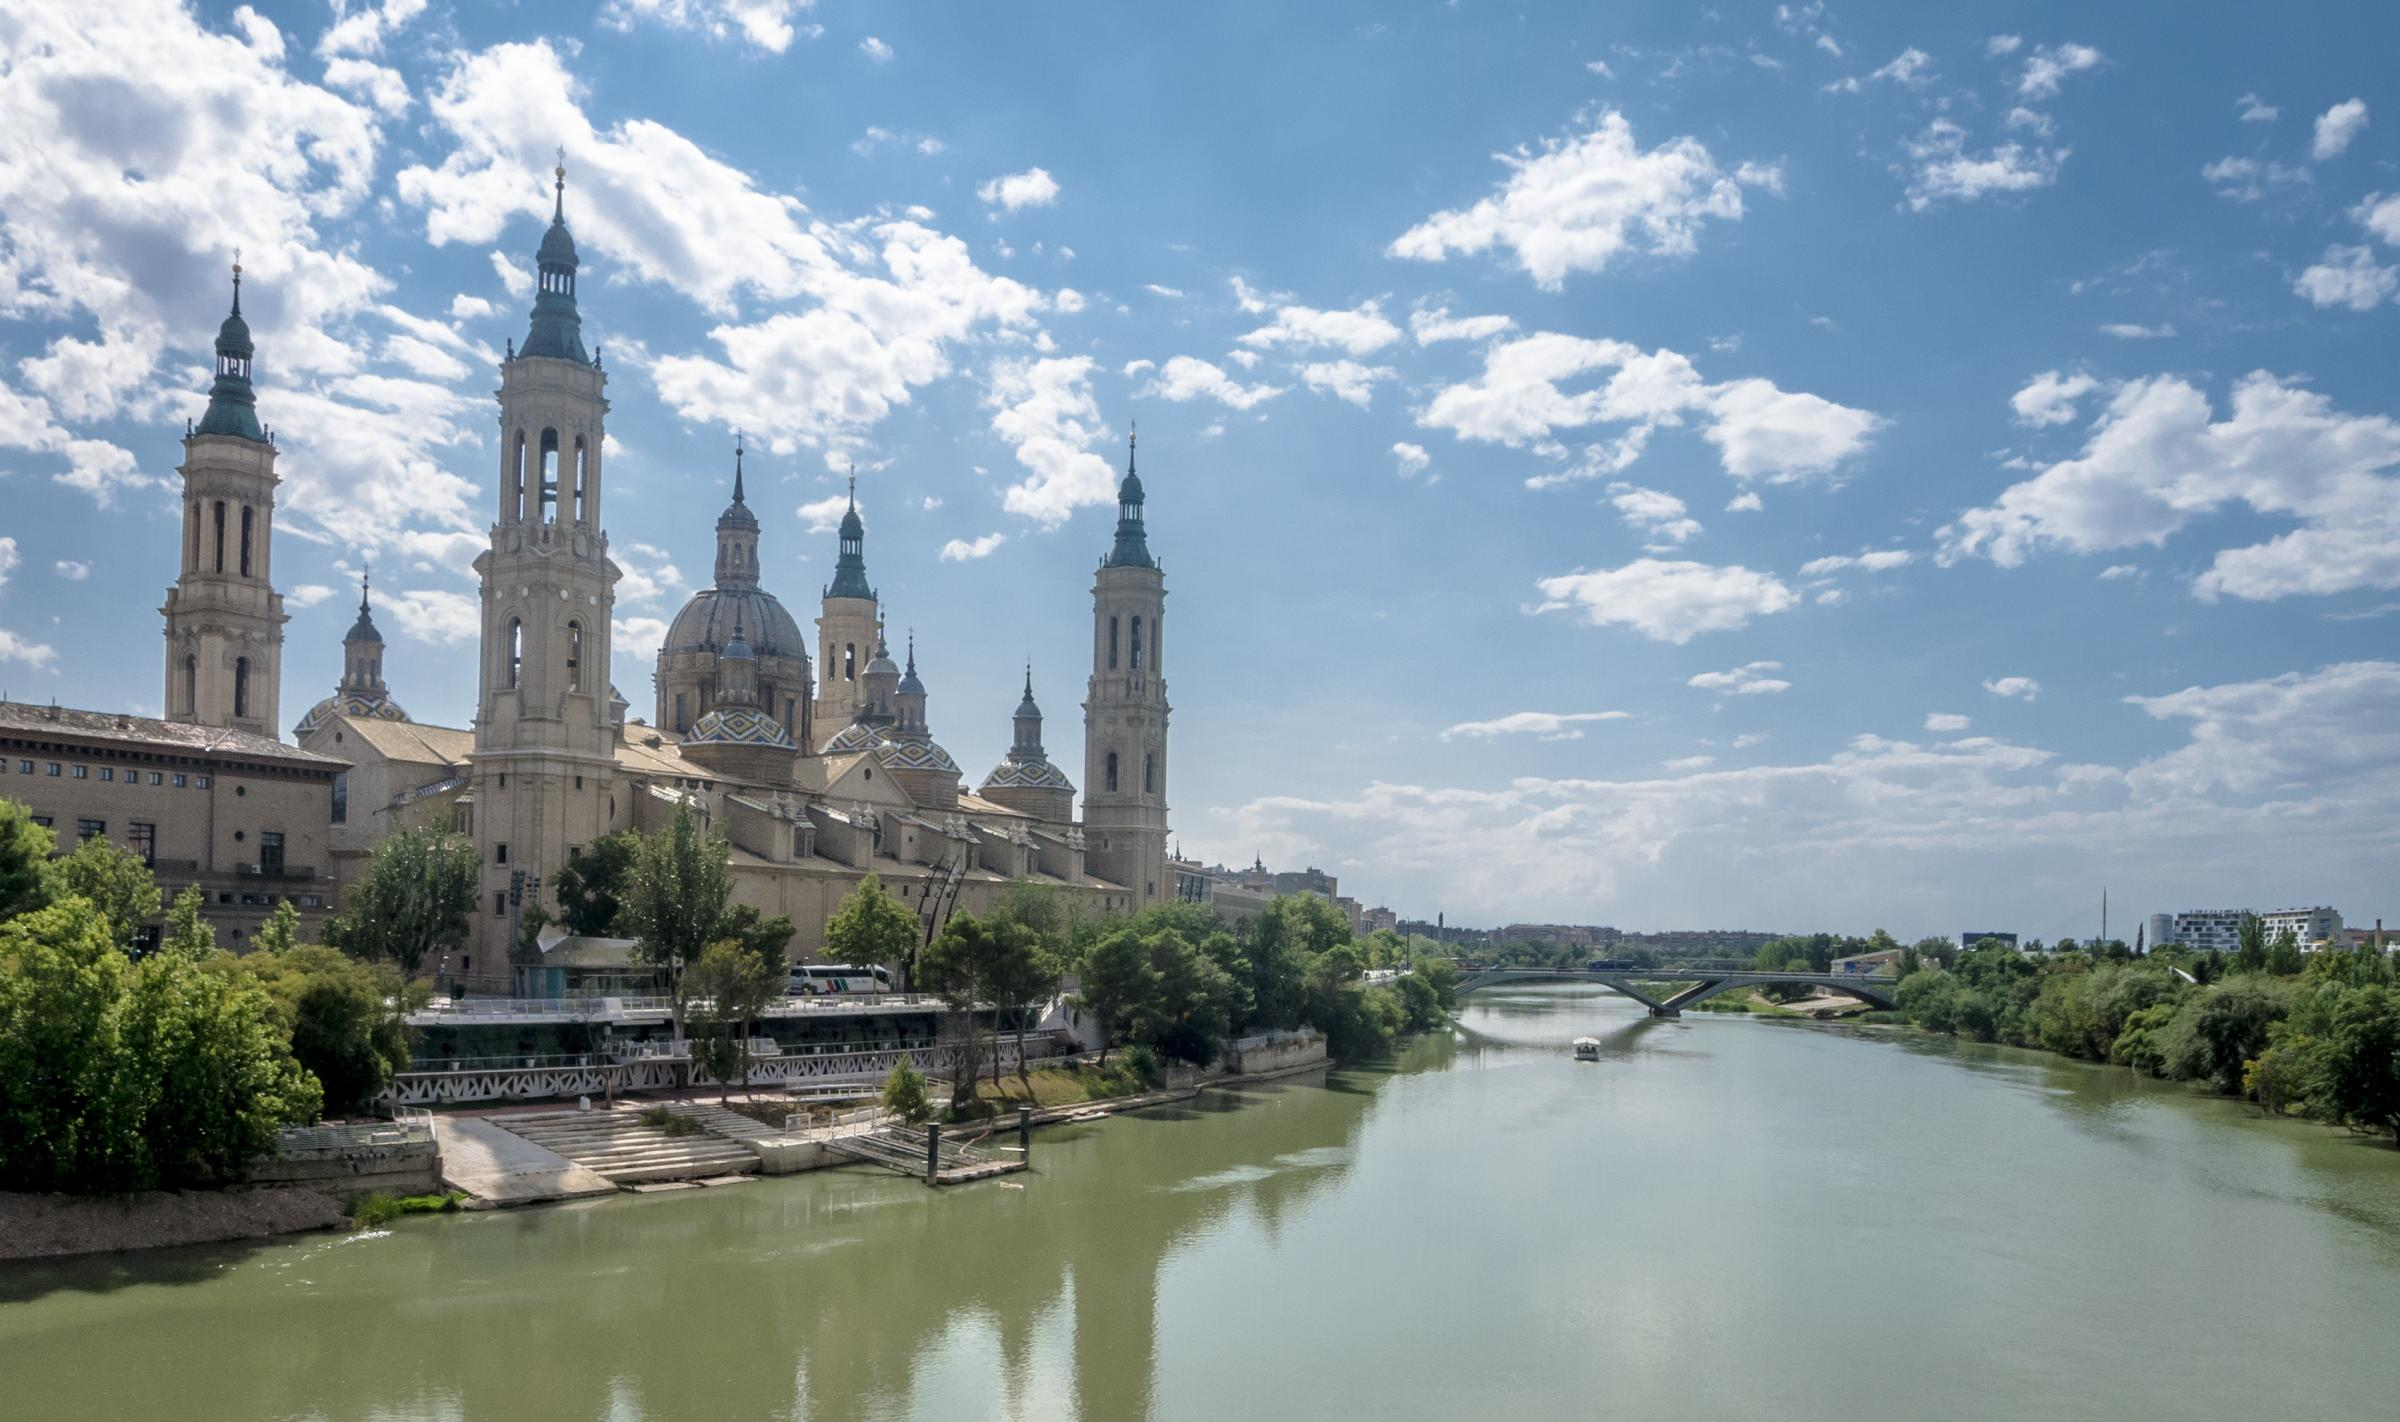 Zaragoza, the capital of Aragon